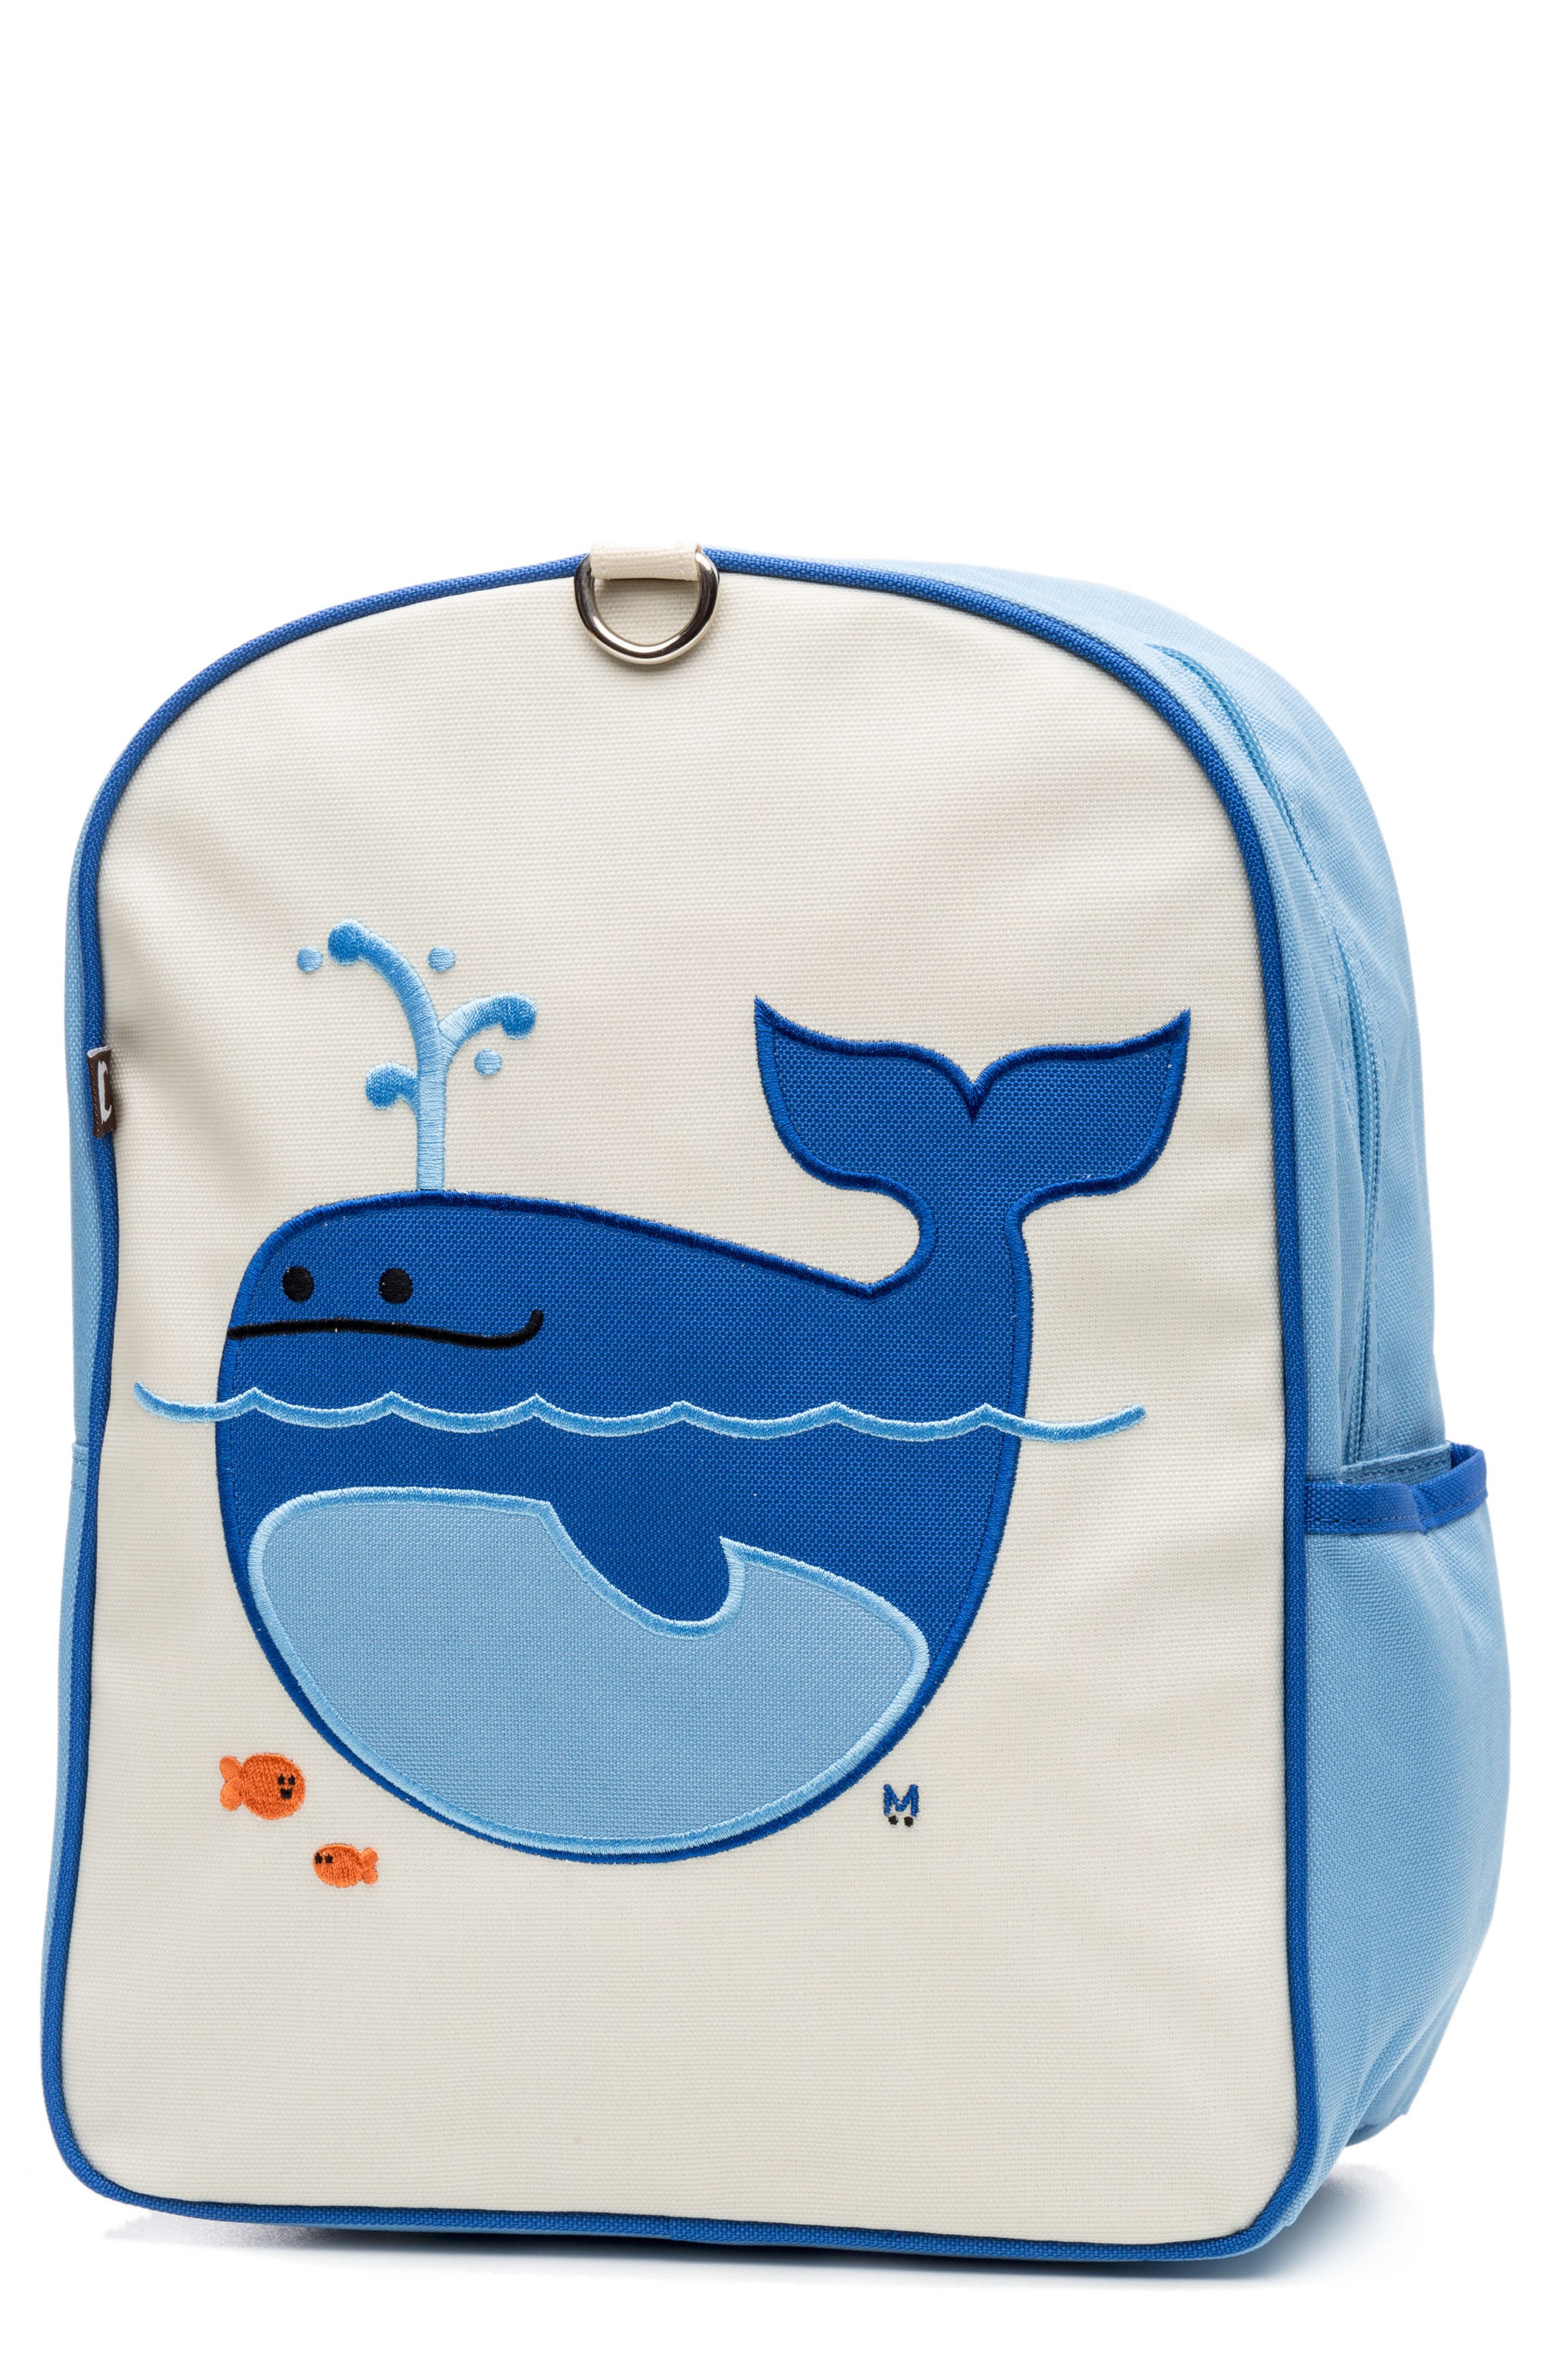 Little Kid Backpack,                             Main thumbnail 1, color,                             Lucas The Whale